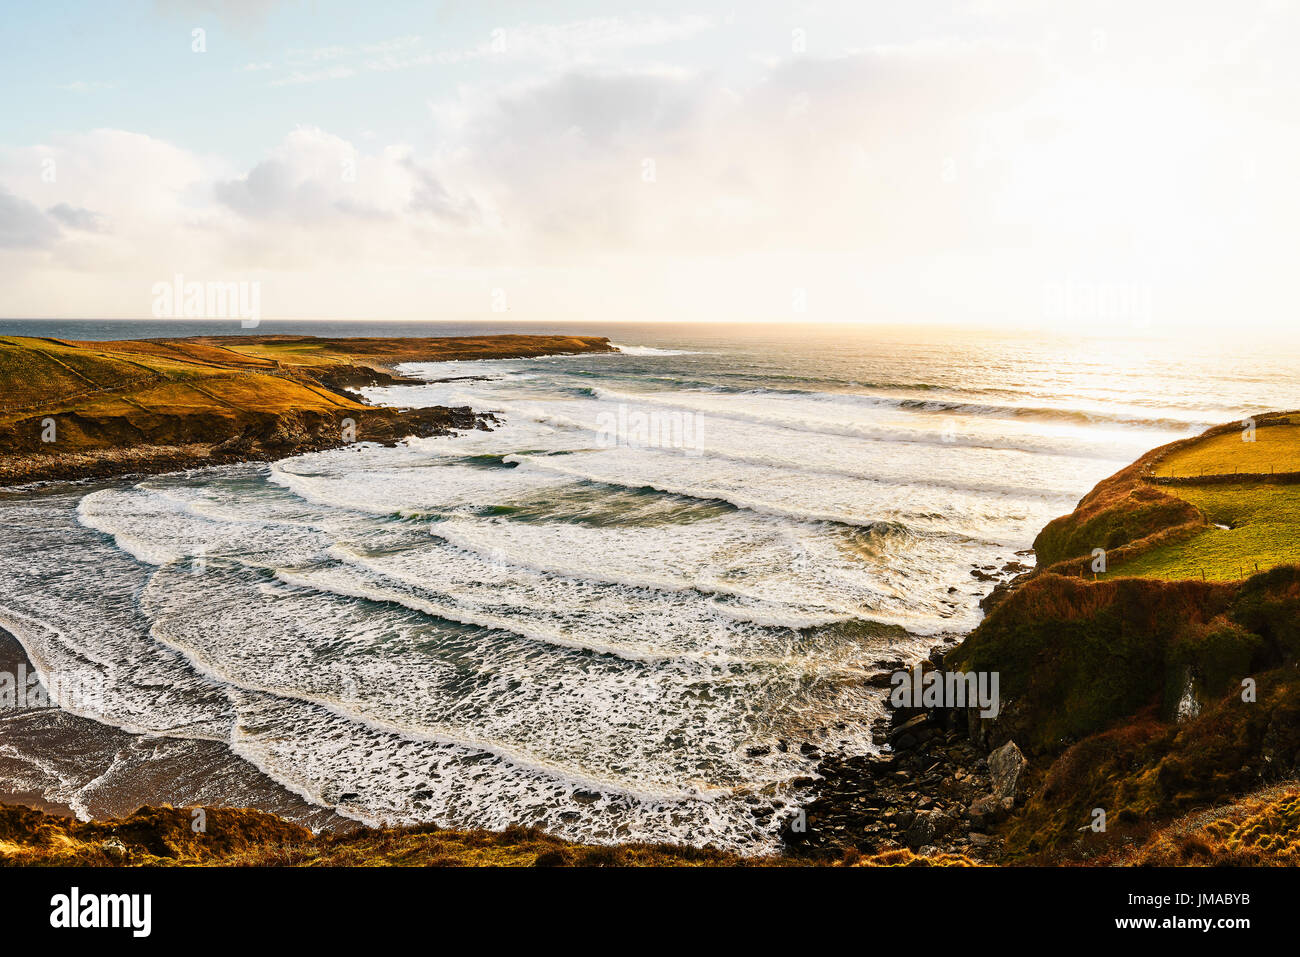 Irish beach during sunset in the summer with a blue sky and waves smashing against the rocks - Stock Image